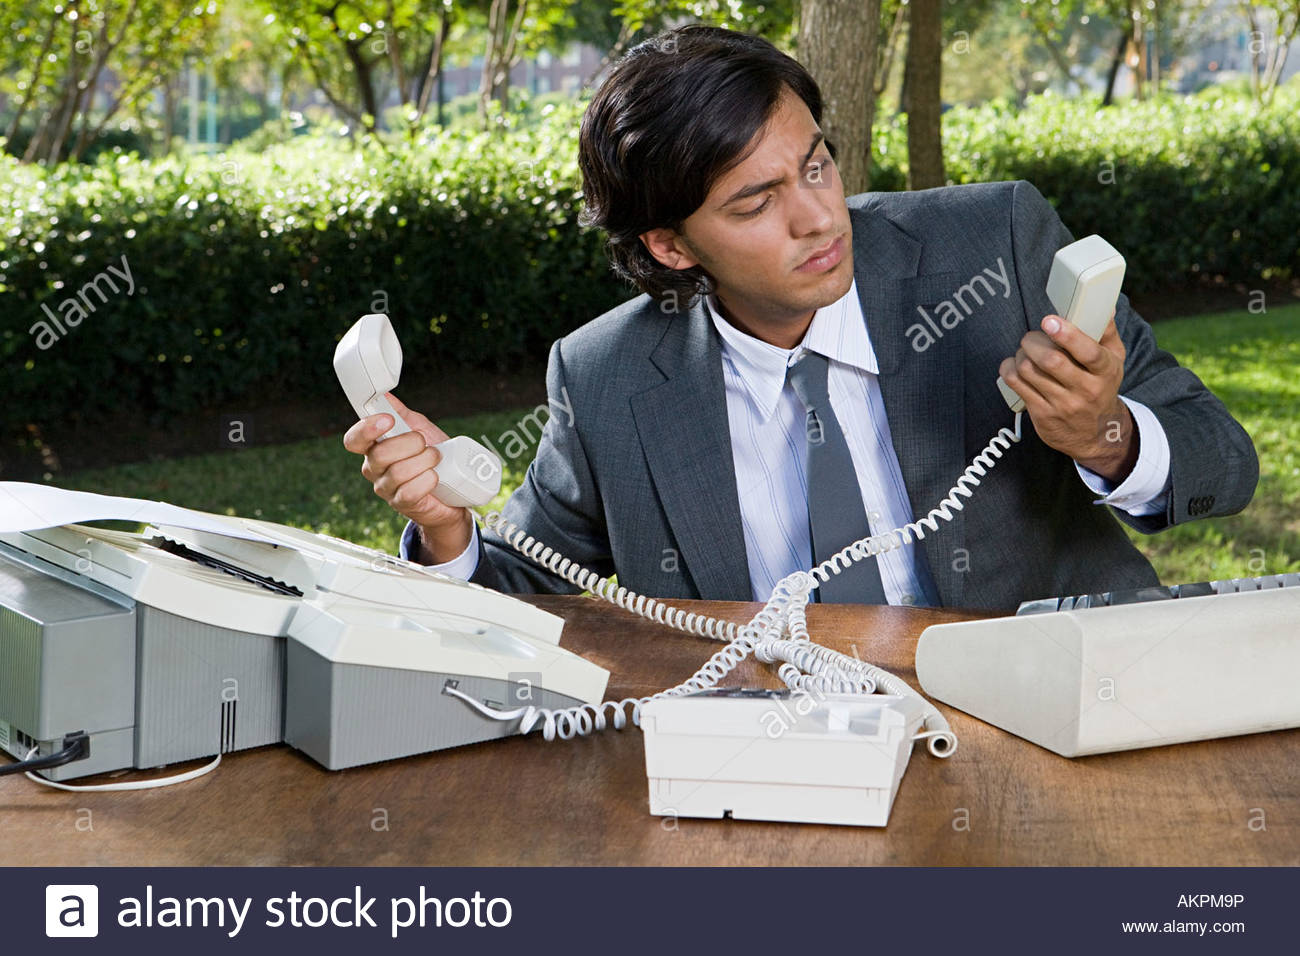 Man taking telephone calls in a park - Stock Image